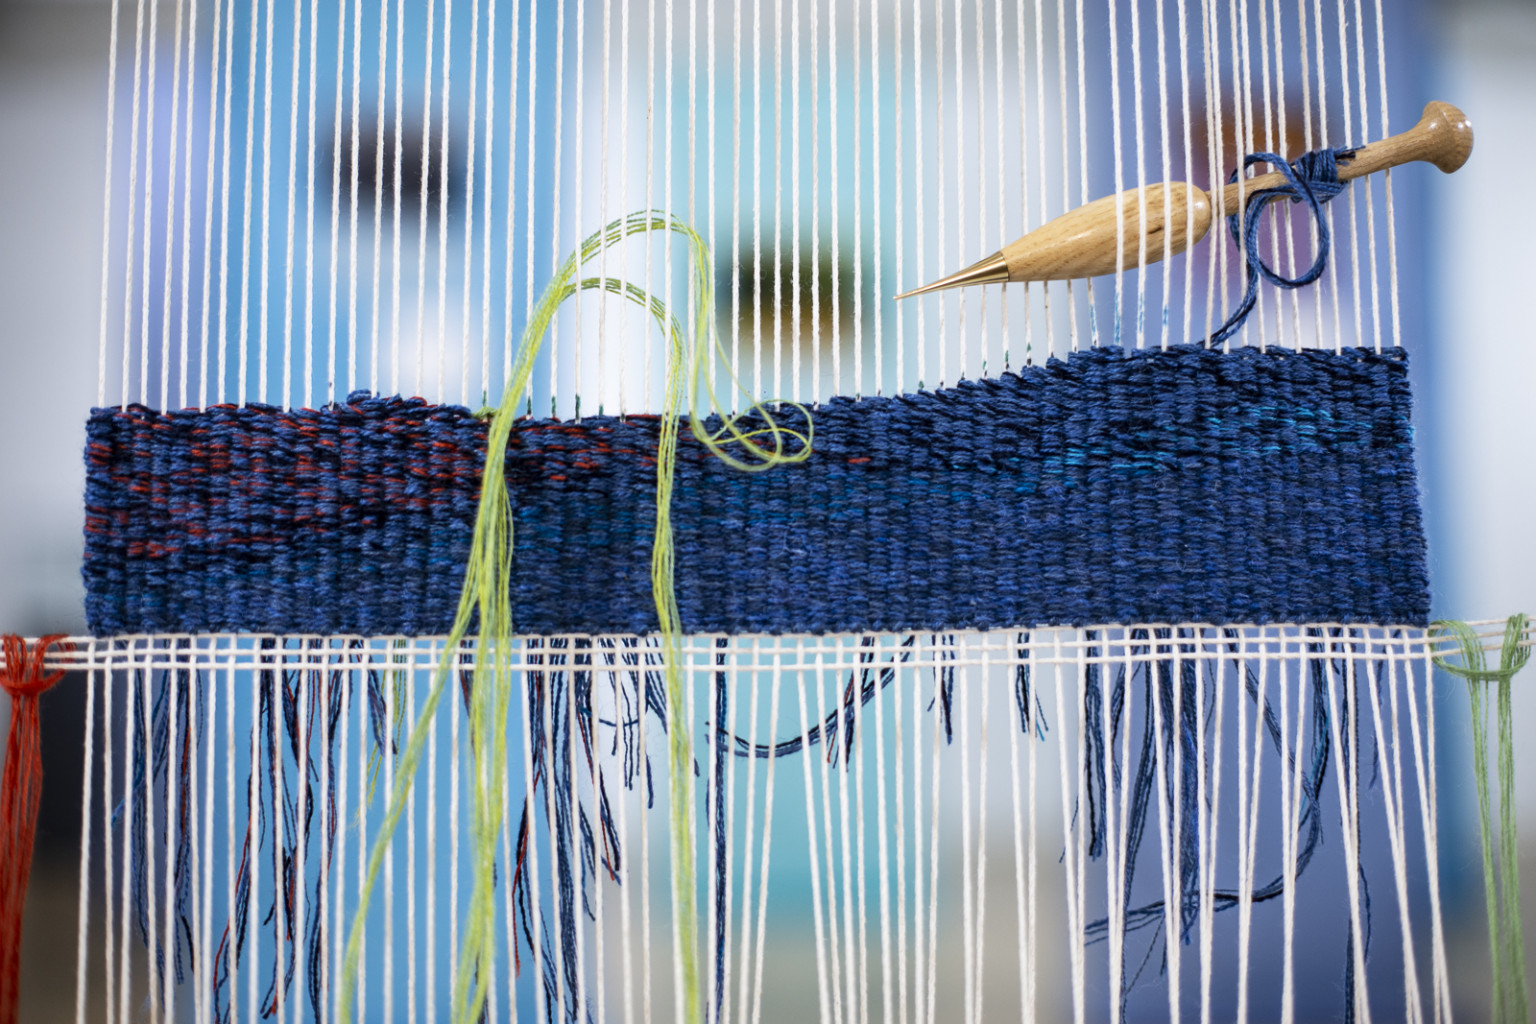 Woven Waves: The Jutland Tapestries